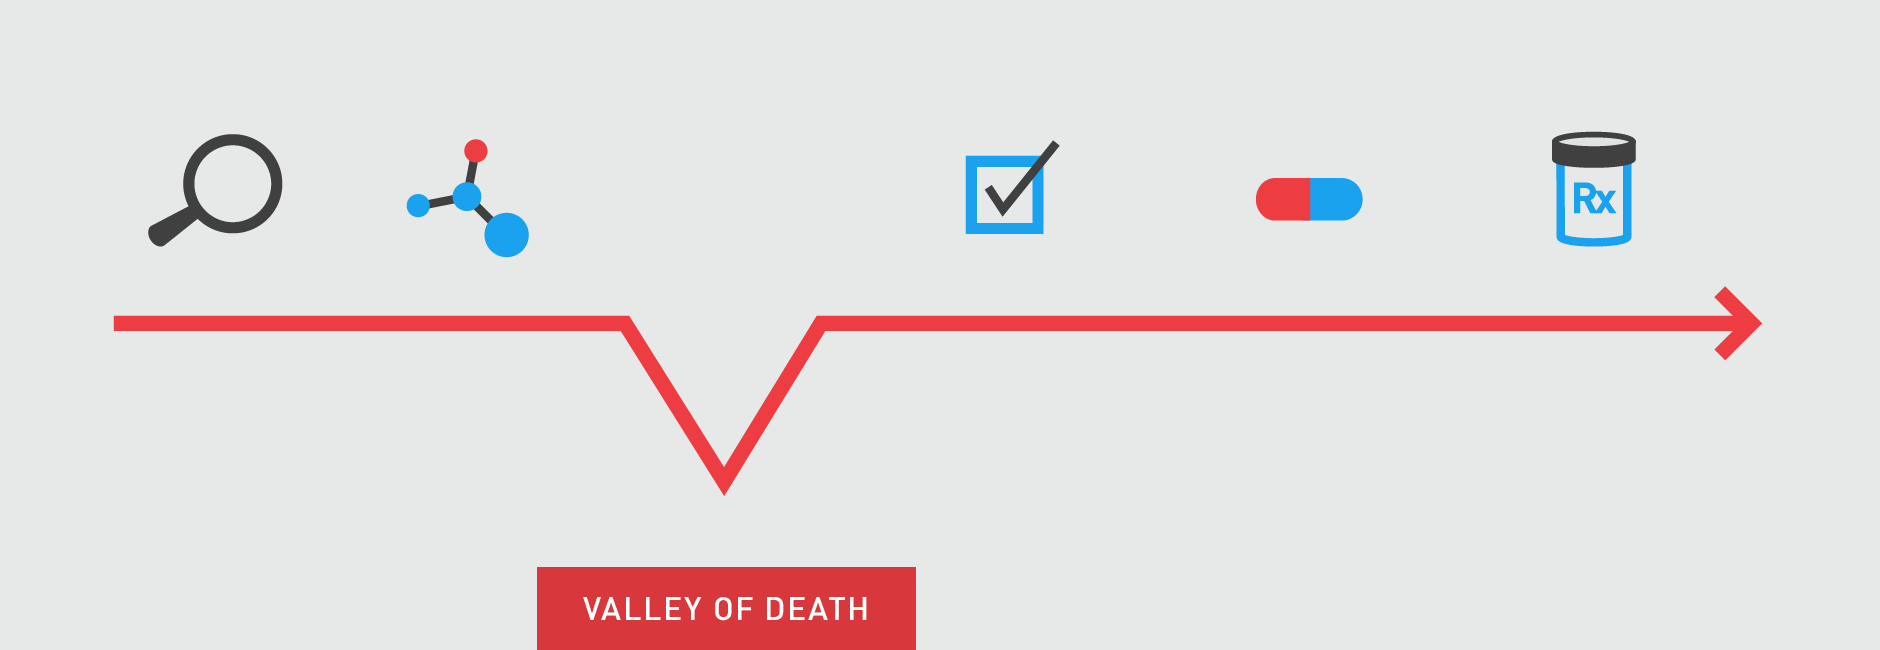 valley-of-death